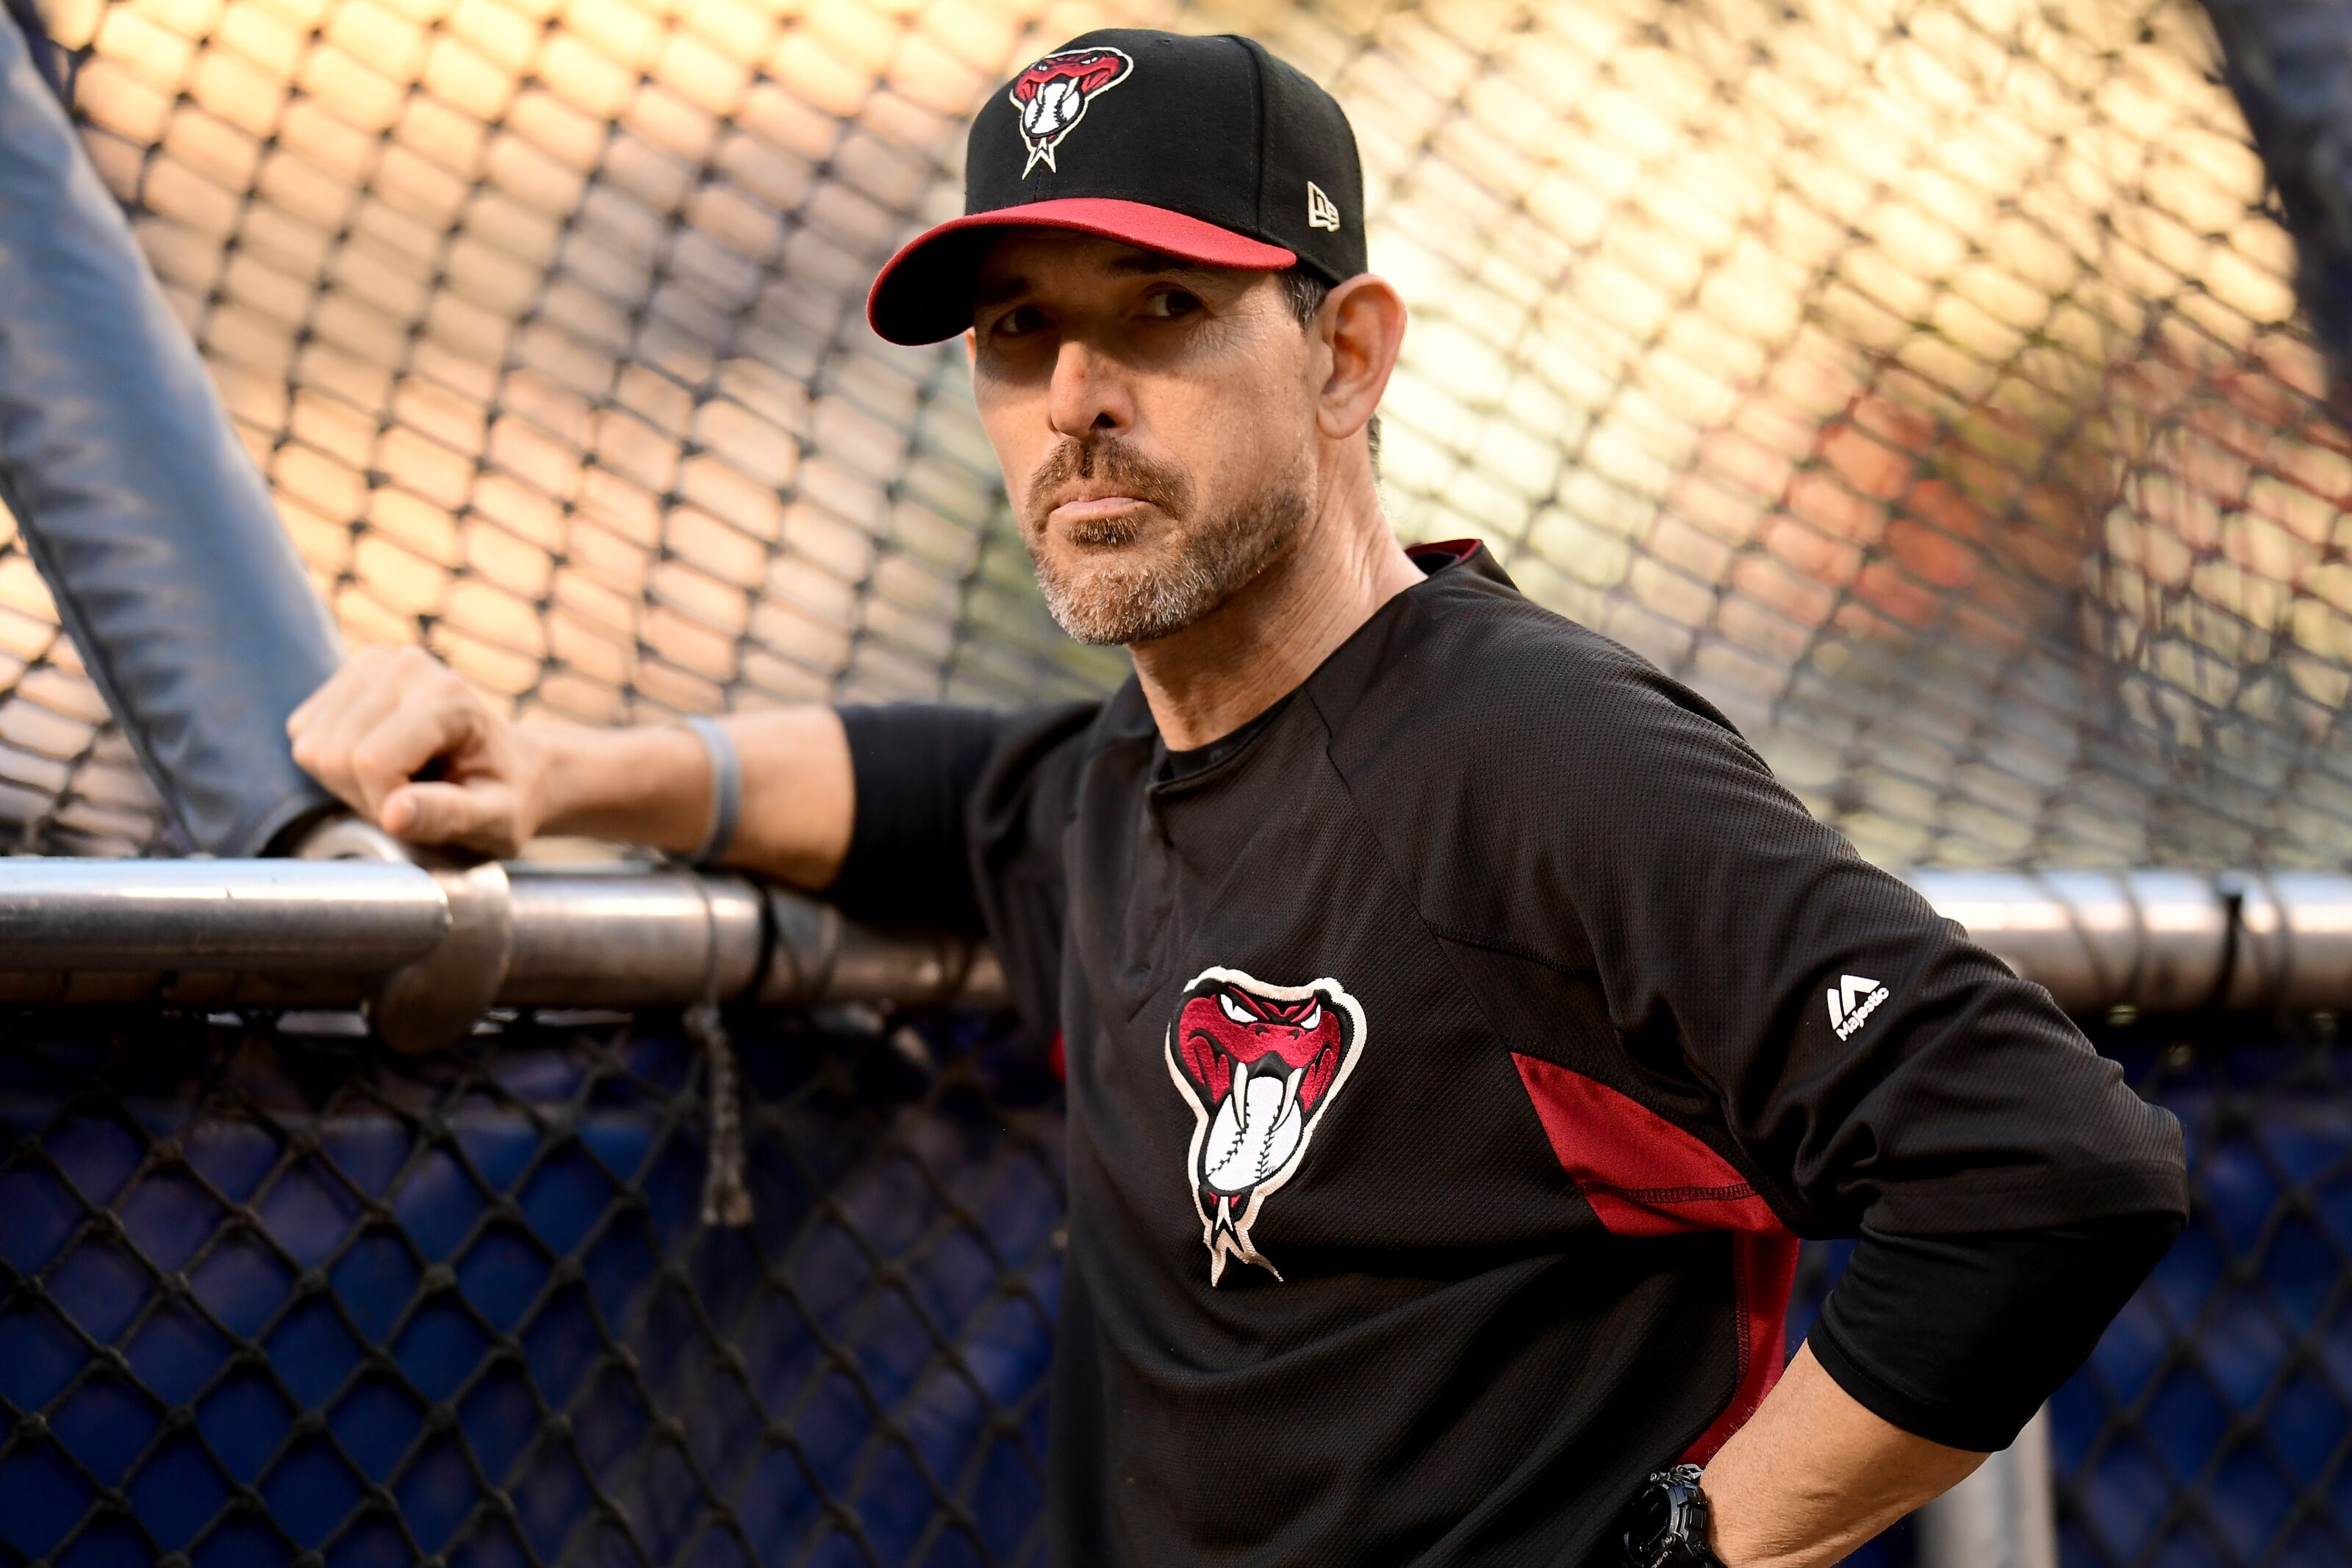 Getting to Know Seattle Mariner New Hitting Coach Tim Laker